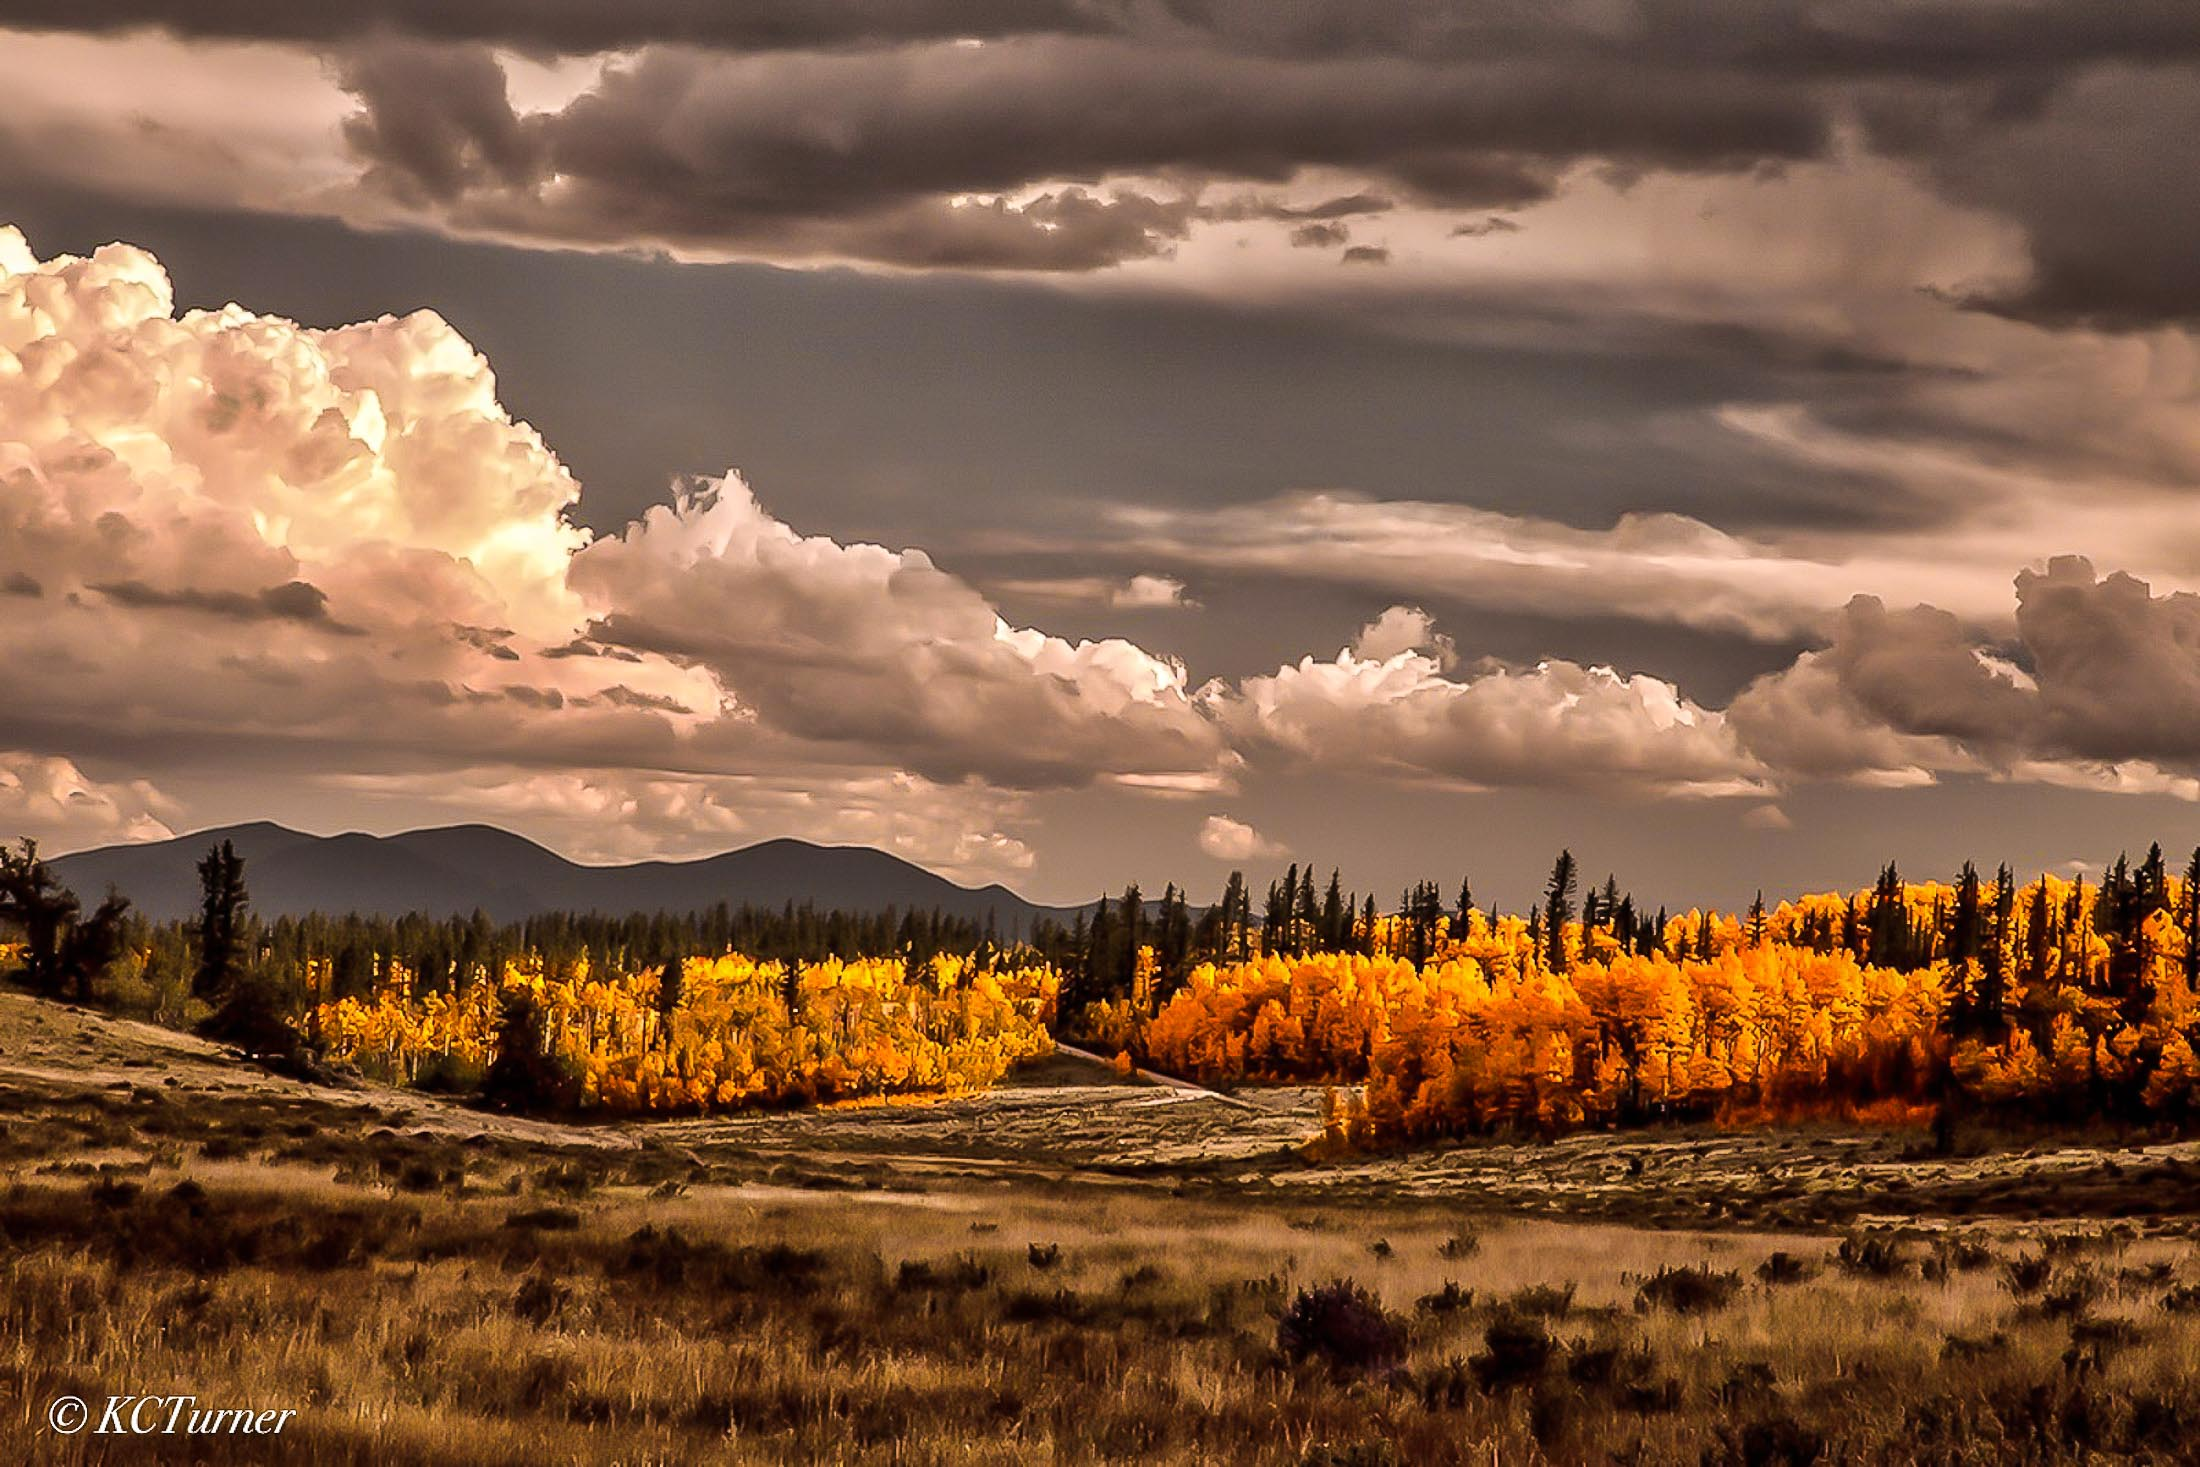 Colorado, pike national forest, lost creek wilderness, landscape, photo, panorama, photo